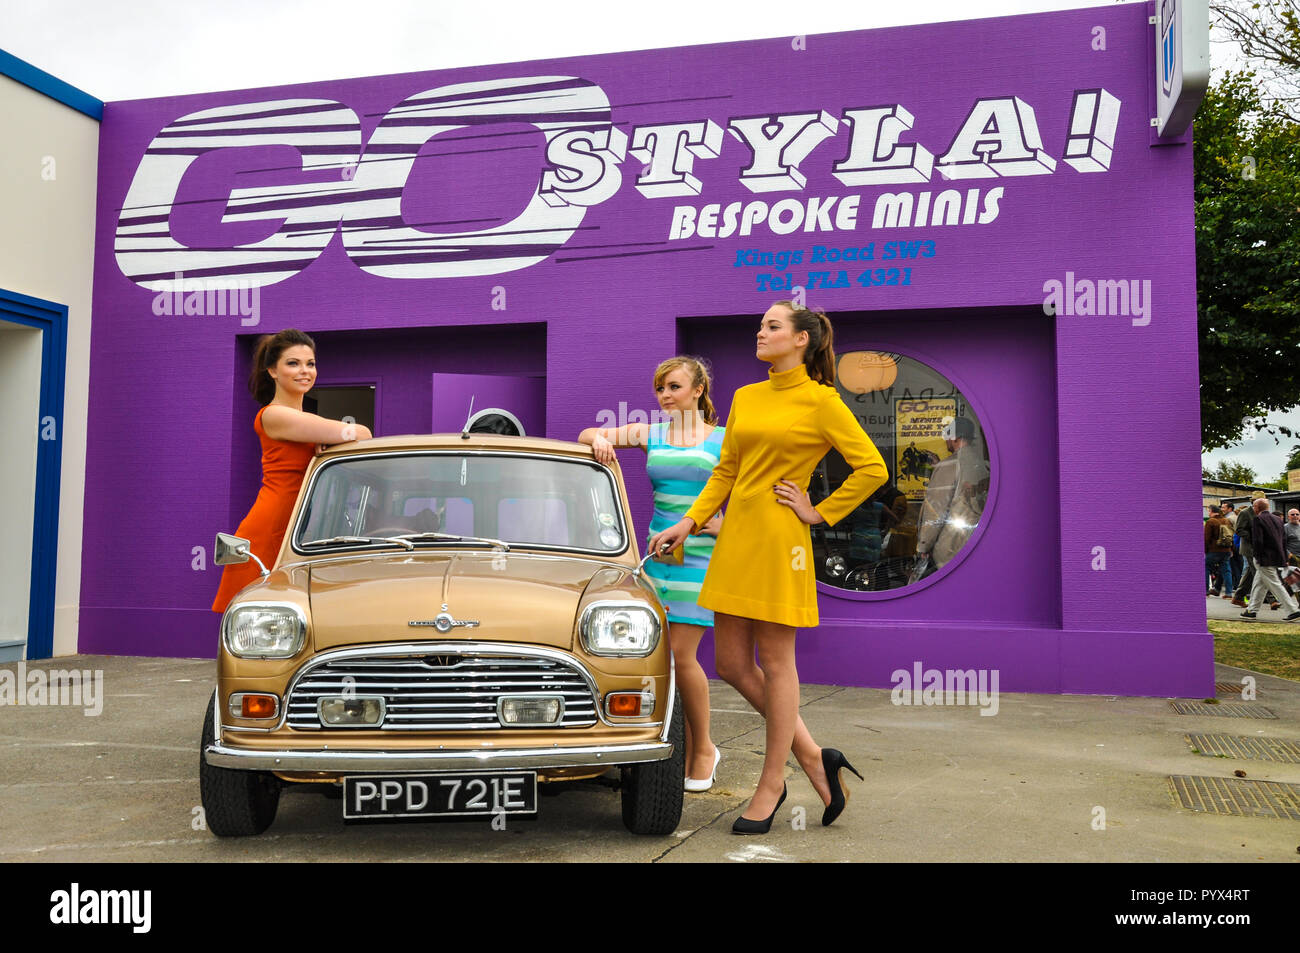 Go styla bespoke minis Kings Road fake shop store with custom Mini car and female models posing outside. Goodwood Revival. Actors - Stock Image